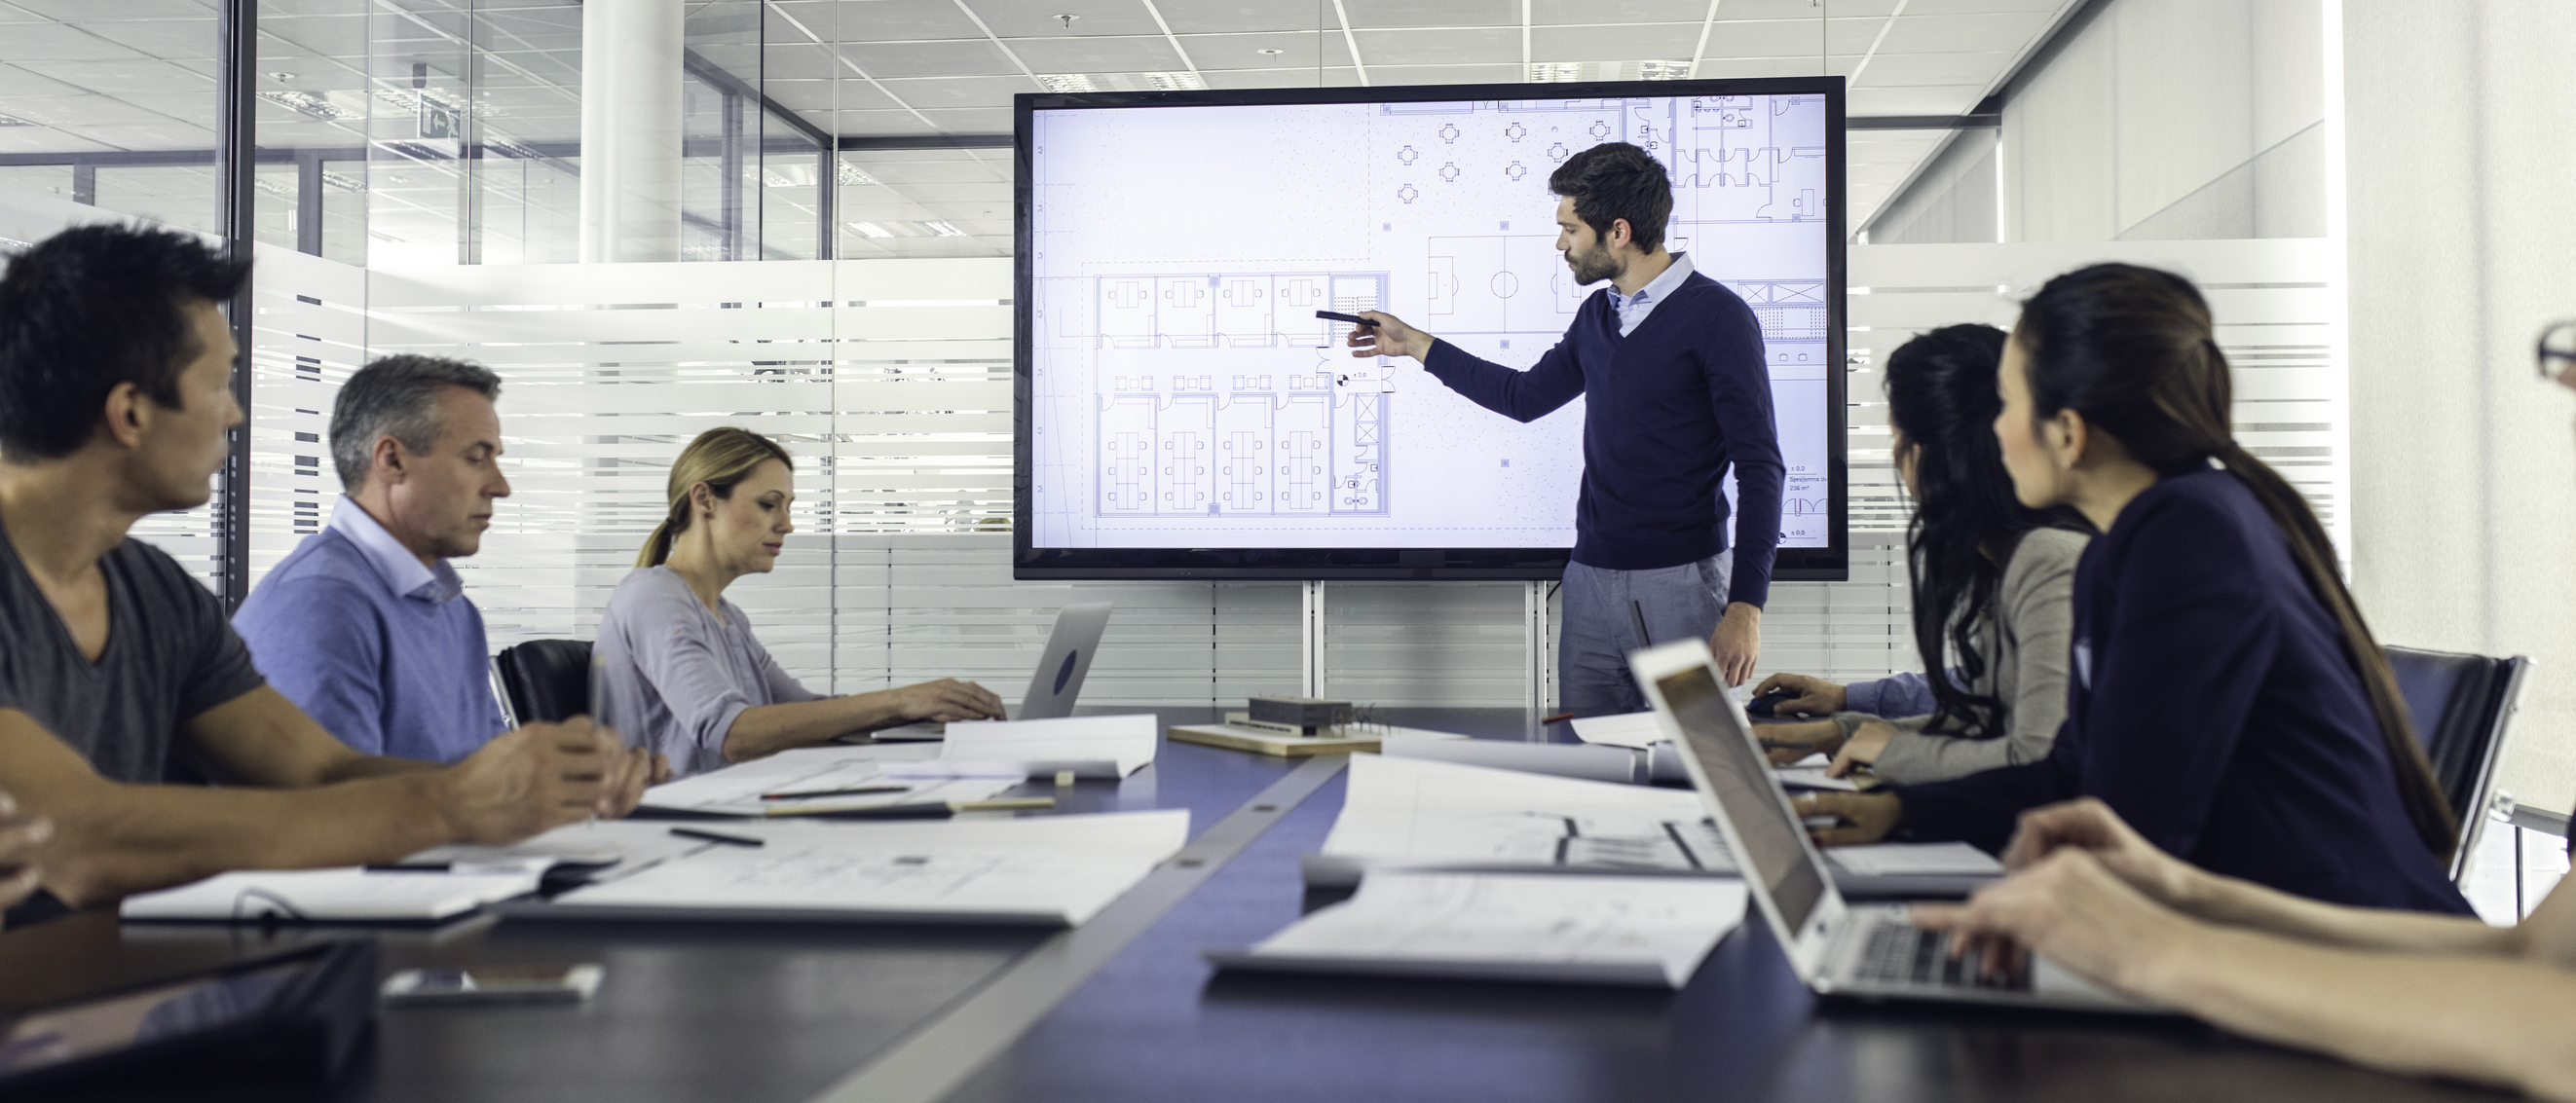 man pointing to floorplans on interactive touchscreen